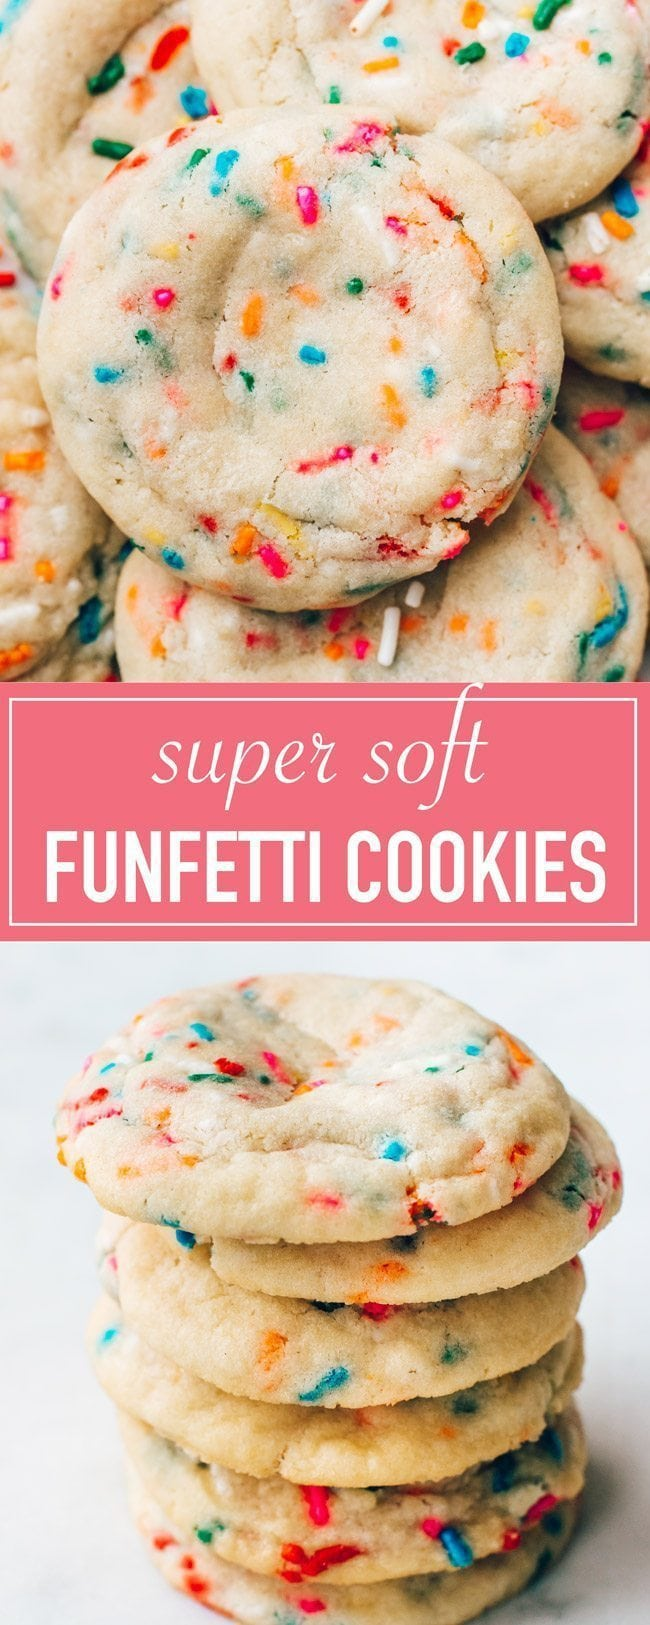 The BEST recipe for soft funfetti sugar cookies. They are chewy, dotted with sprinkles, and have an amazing buttery vanilla flavor. Festive and perfect for birthdays!